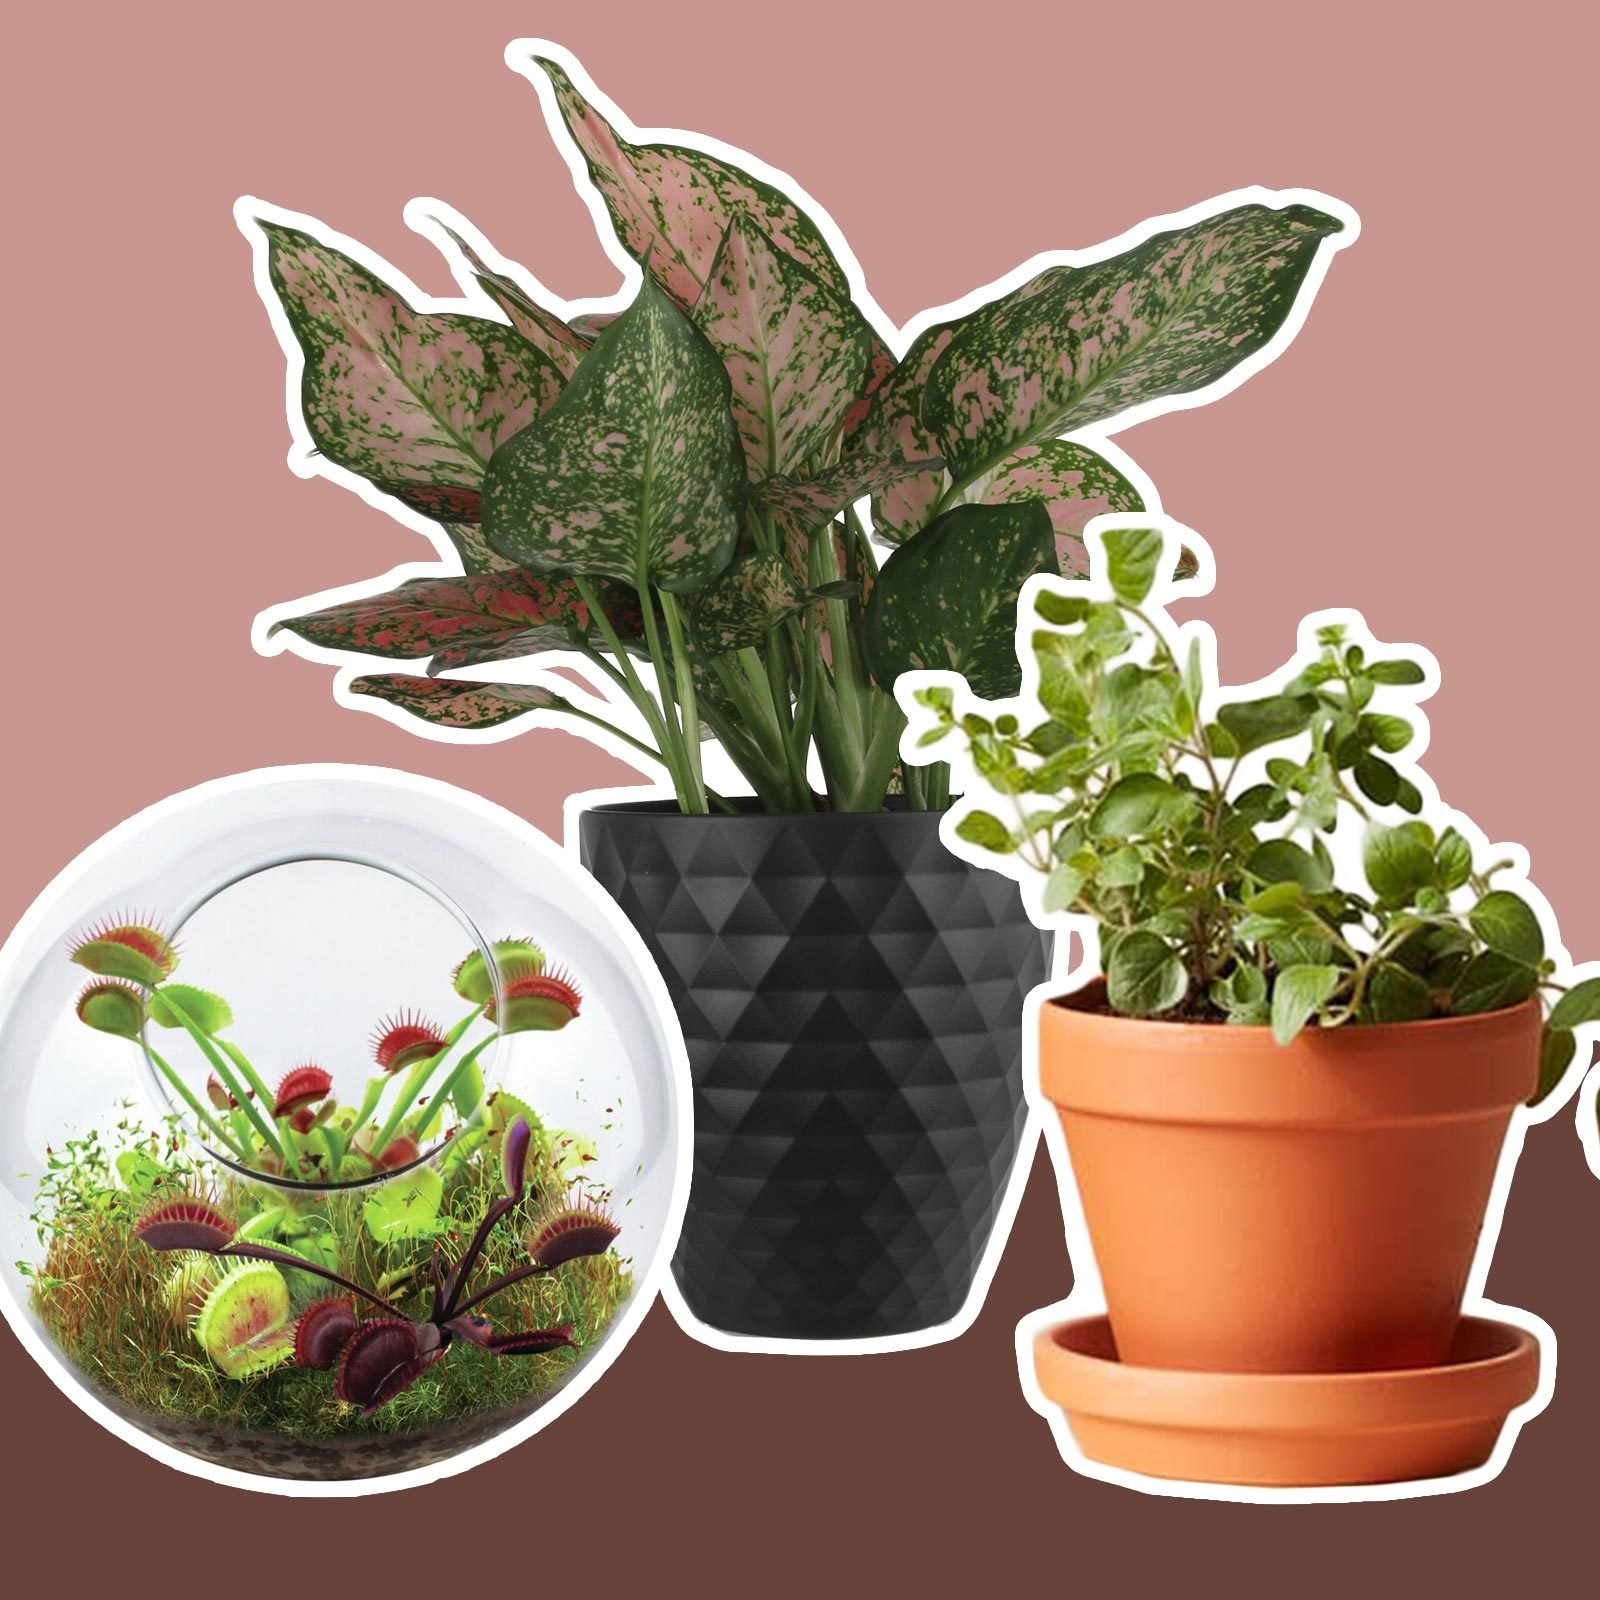 Plants for any size space